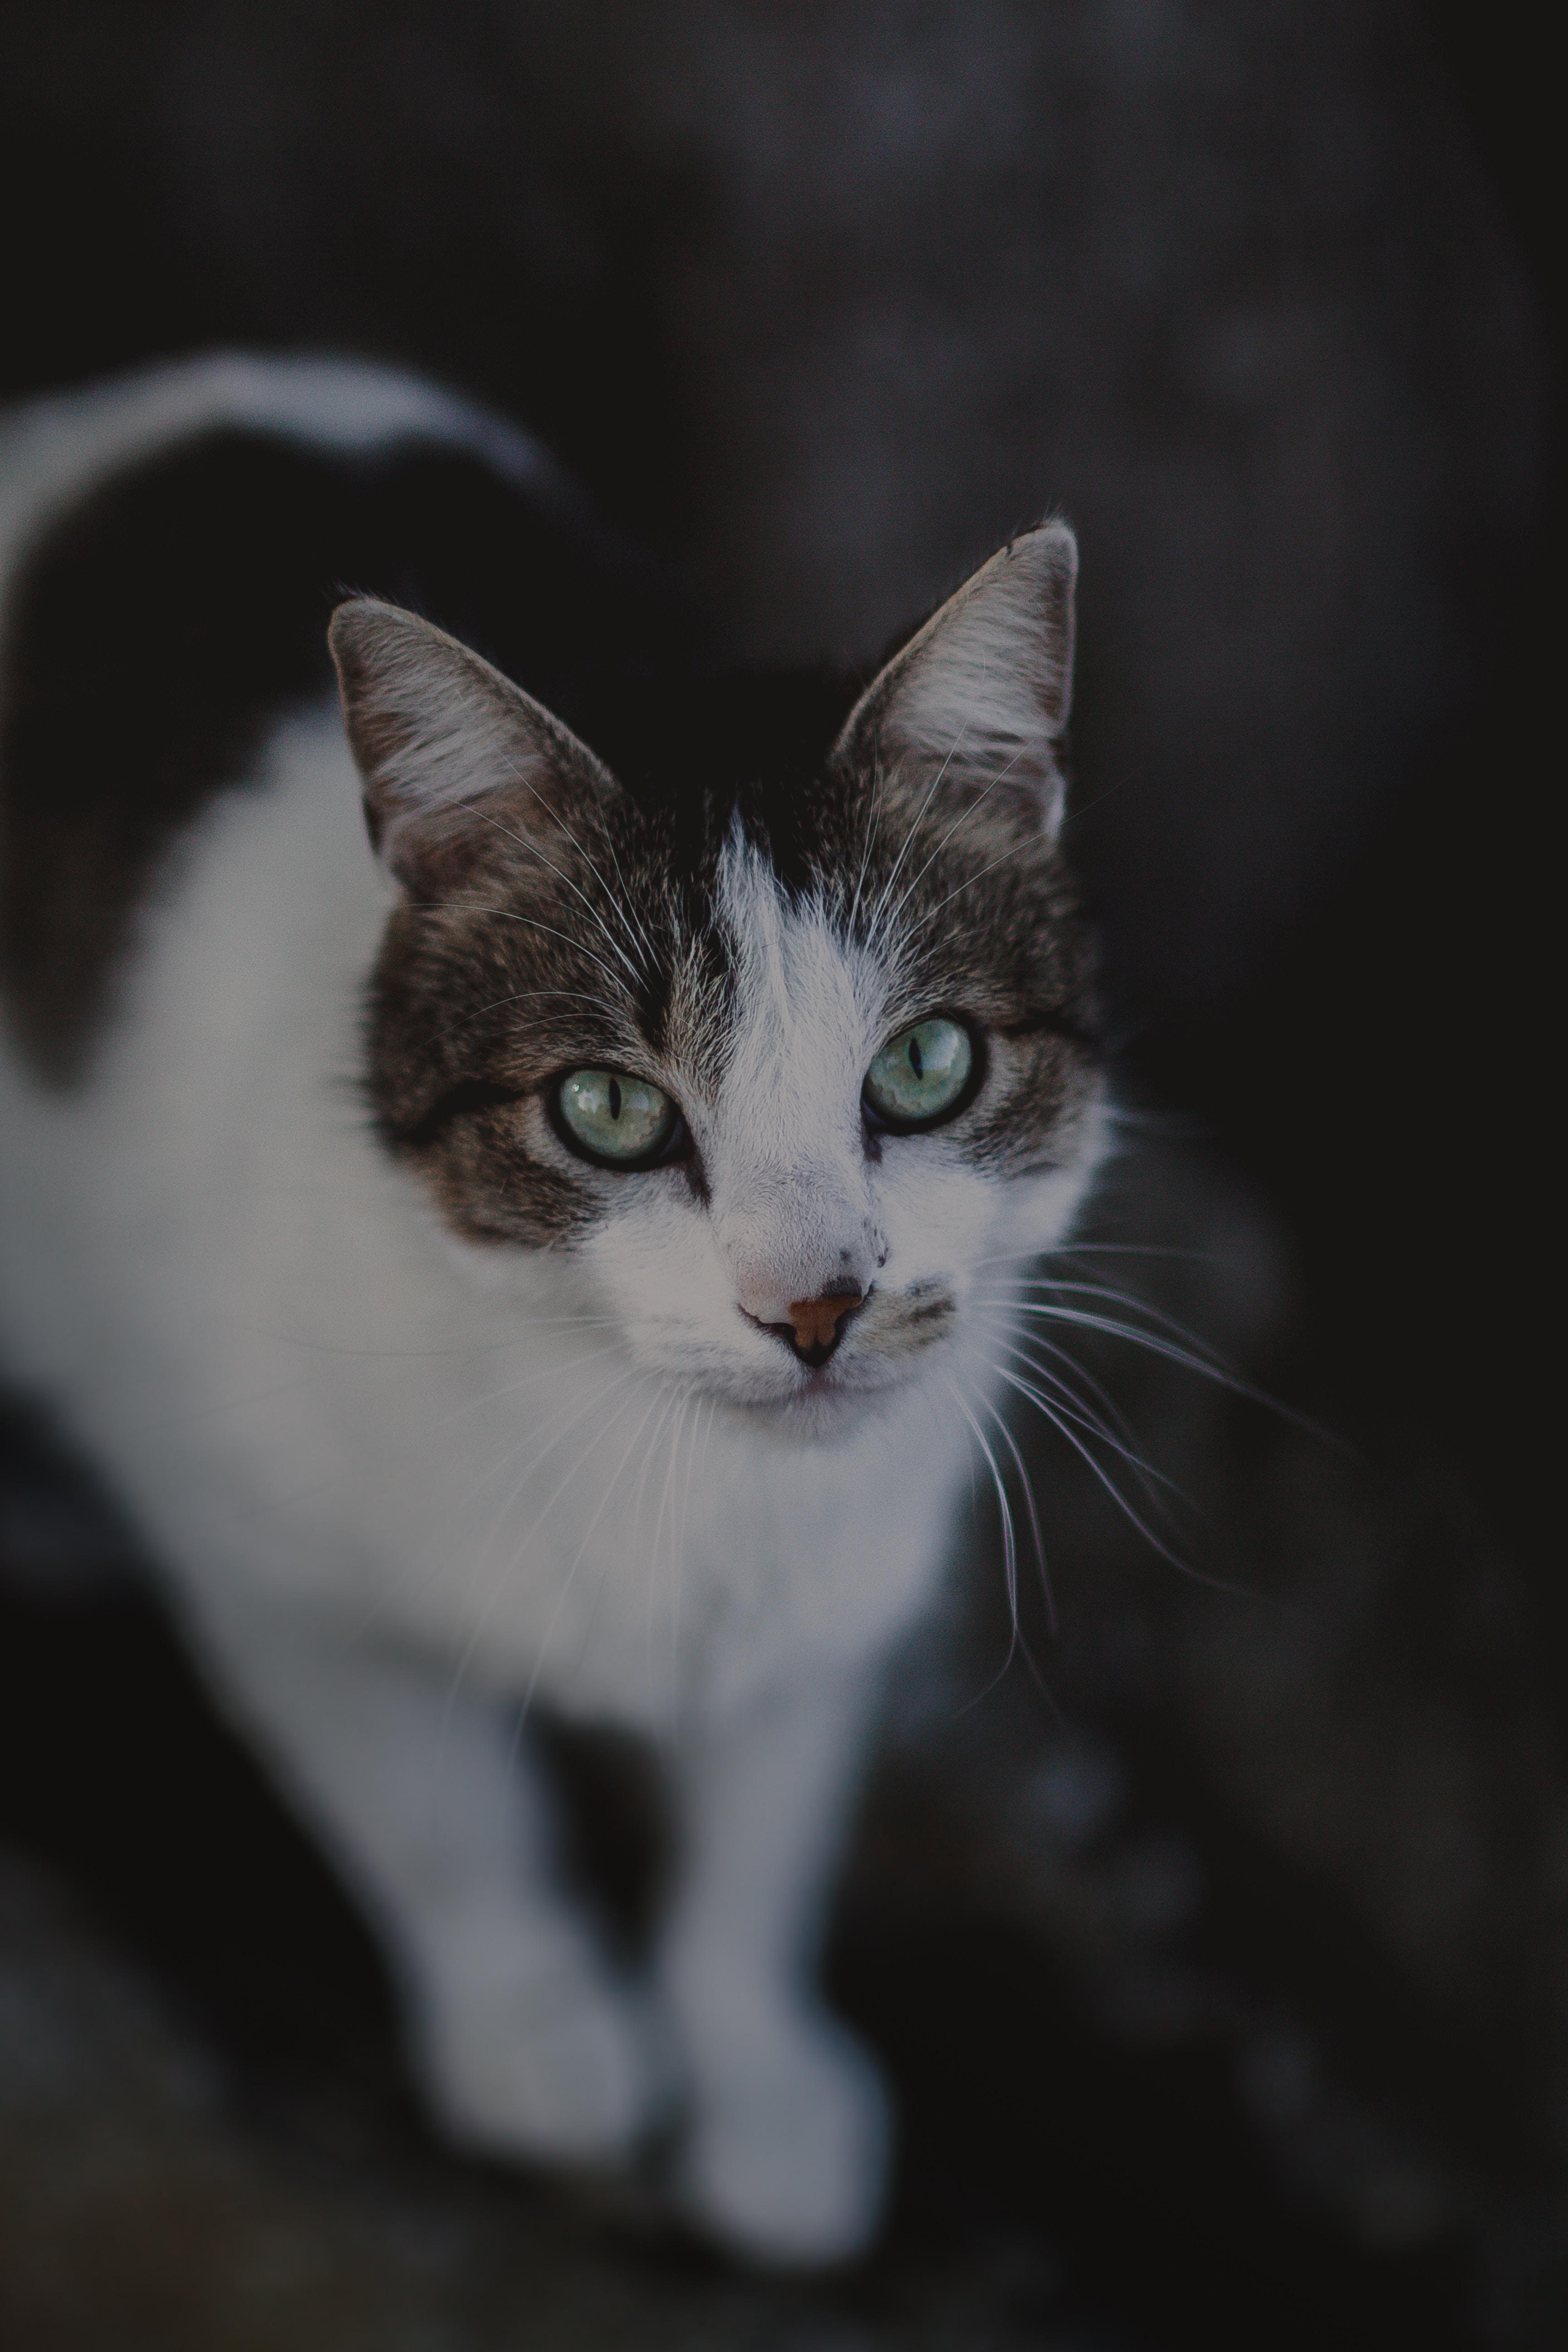 68406 download wallpaper Animals, Cat, Muzzle, Sight, Opinion, Spotted, Spotty, Blur, Smooth screensavers and pictures for free